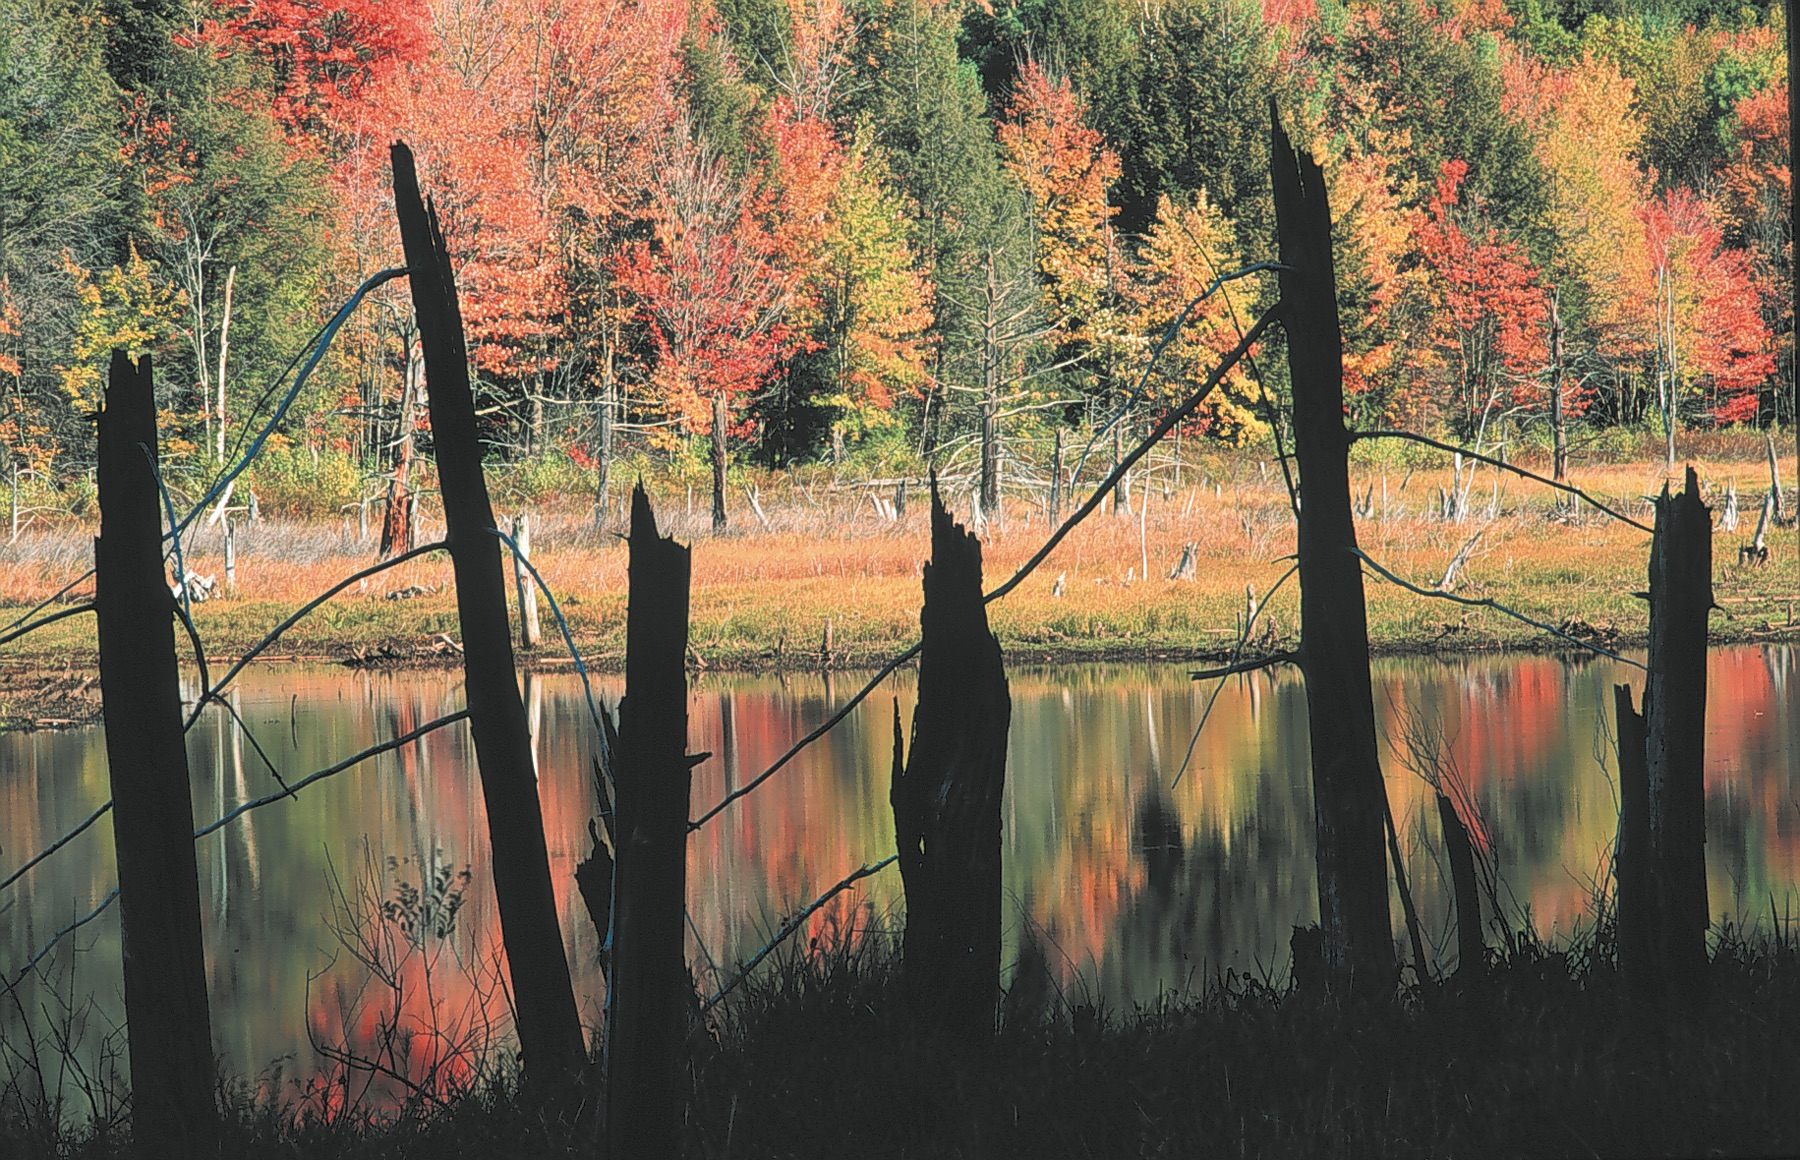 Fall foliage across body of water with snags in foreground